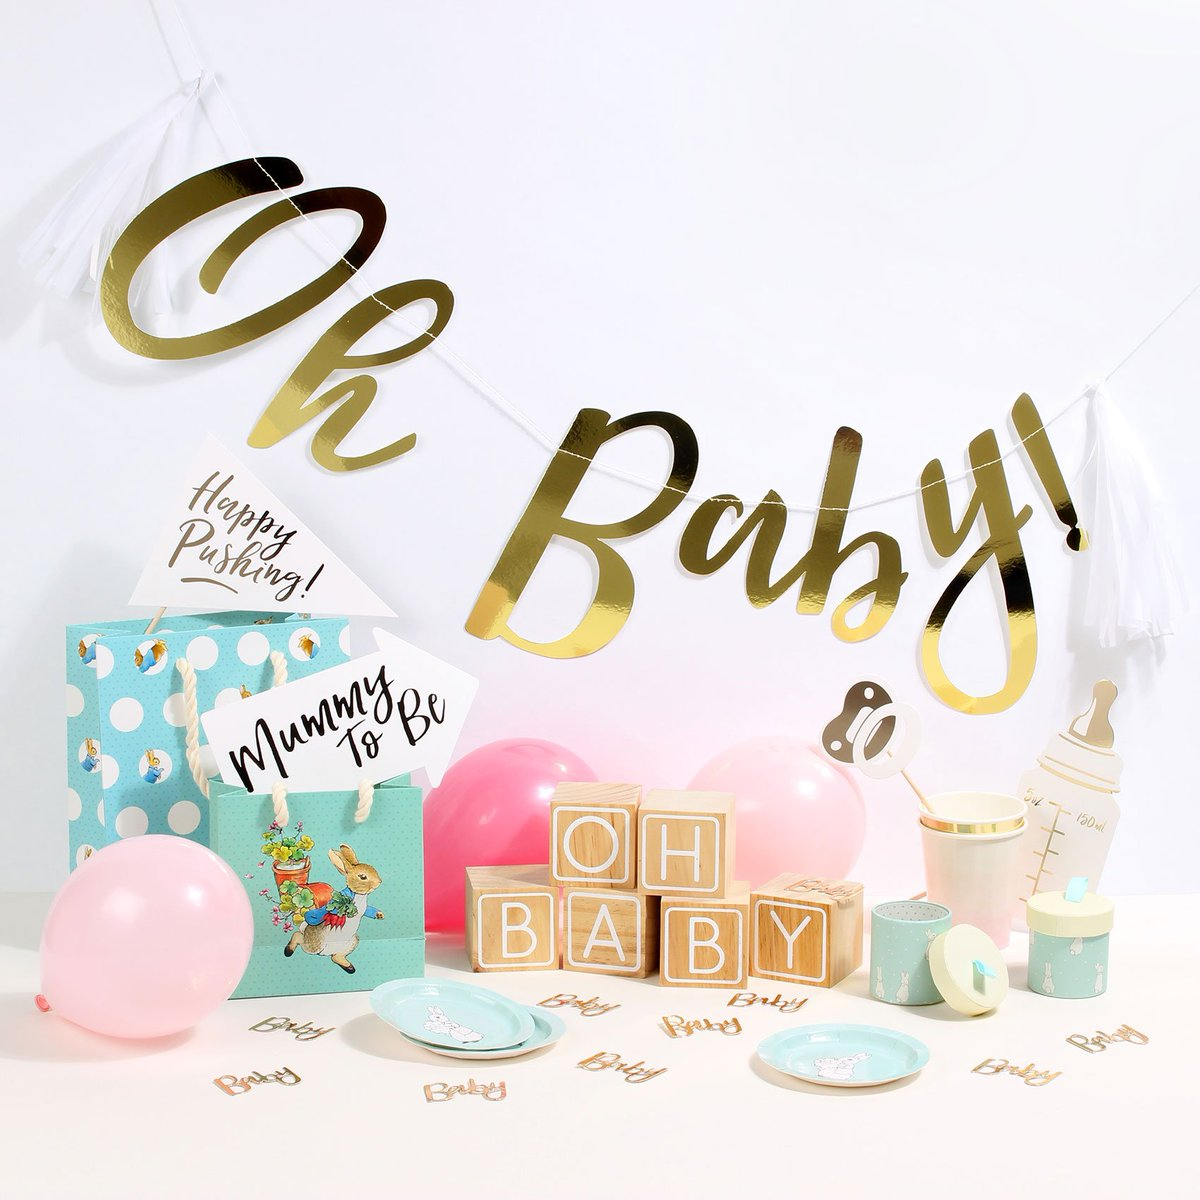 Paperchase On Twitter A New Royal Baby Has Been Born Congrats To